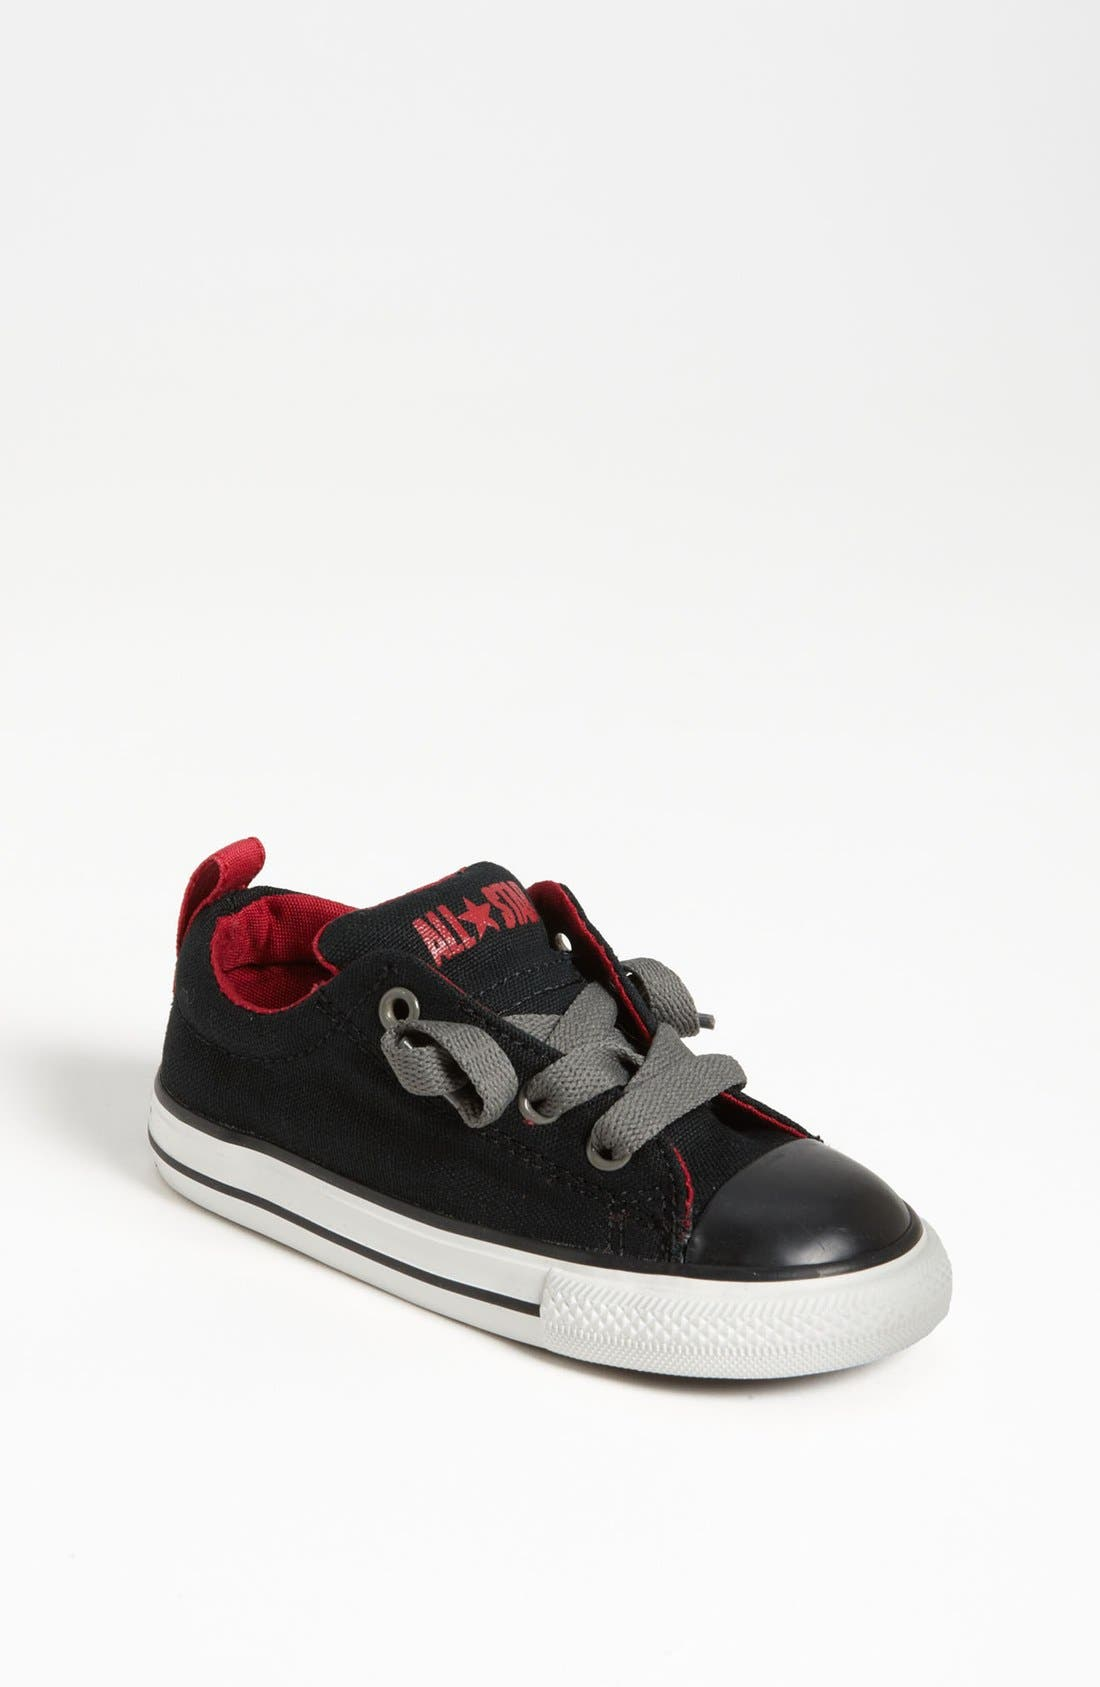 Main Image - Converse 'Street Ox' Slip-On Sneaker (Baby, Walker & Toddler)